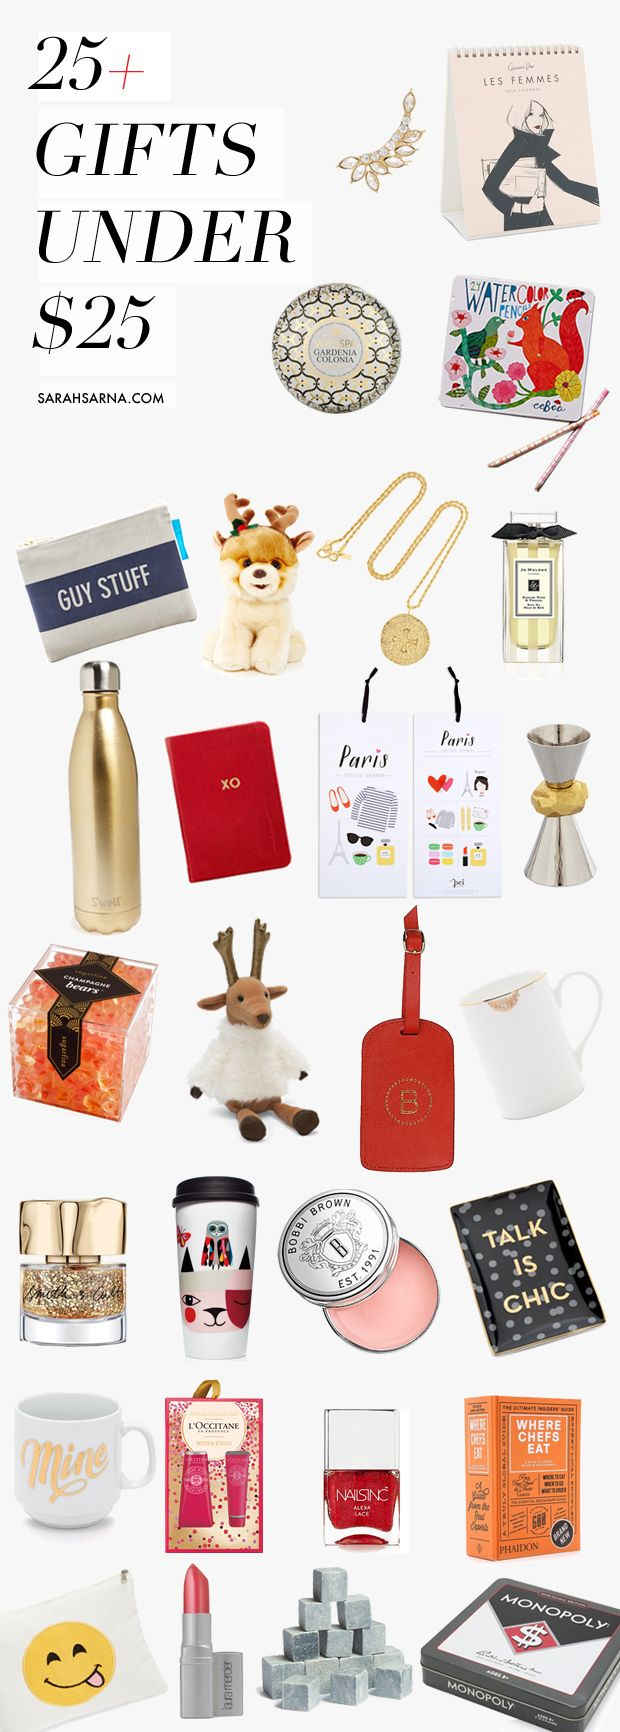 1000 images about gifts ideas on pinterest secret Ideas for womens christmas gifts under 25